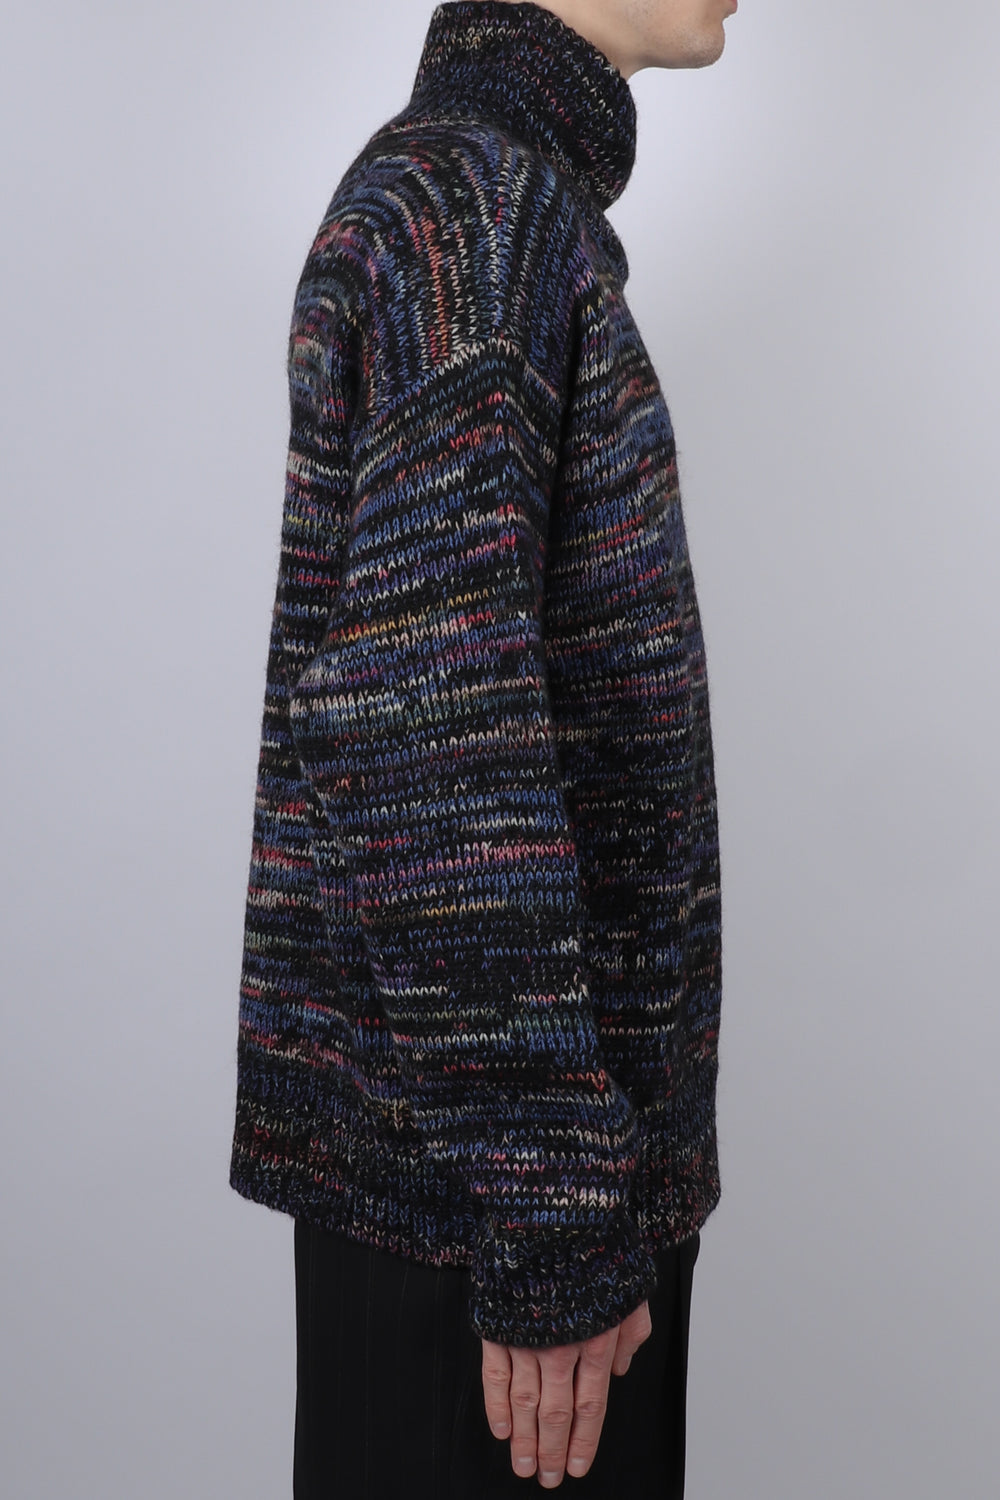 Dries Van Noten Tanish Knitted Sweater In Black